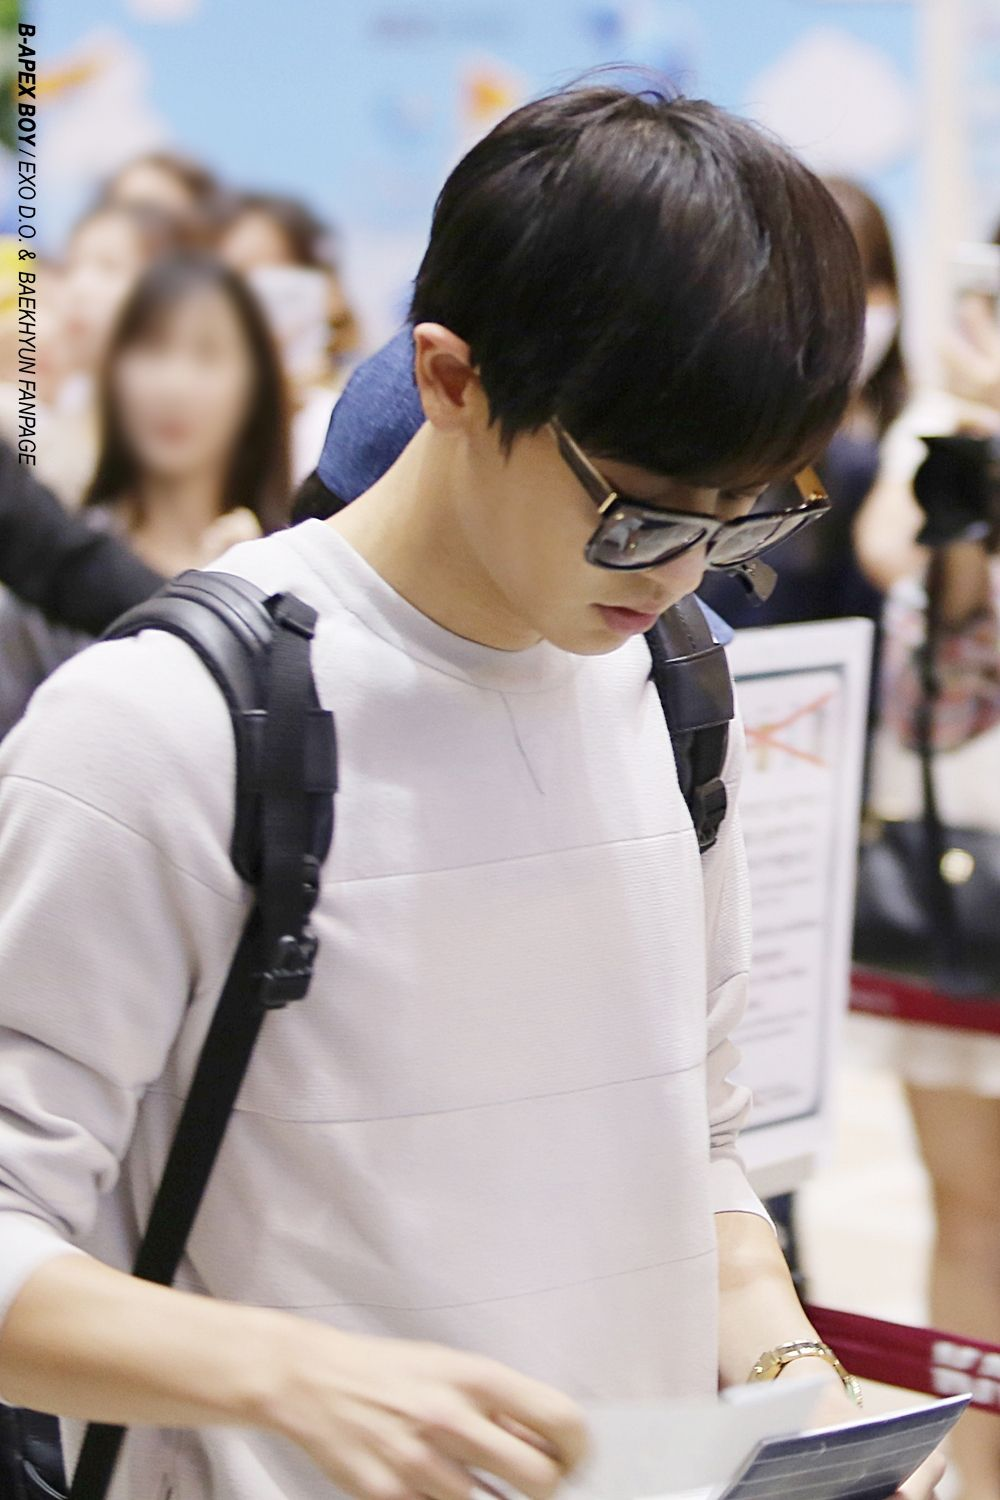 Chanyeol - 150831 Gimpo Airport, arrival from Tokyo Credit: B-Apex Boy. (김포공항 입국)